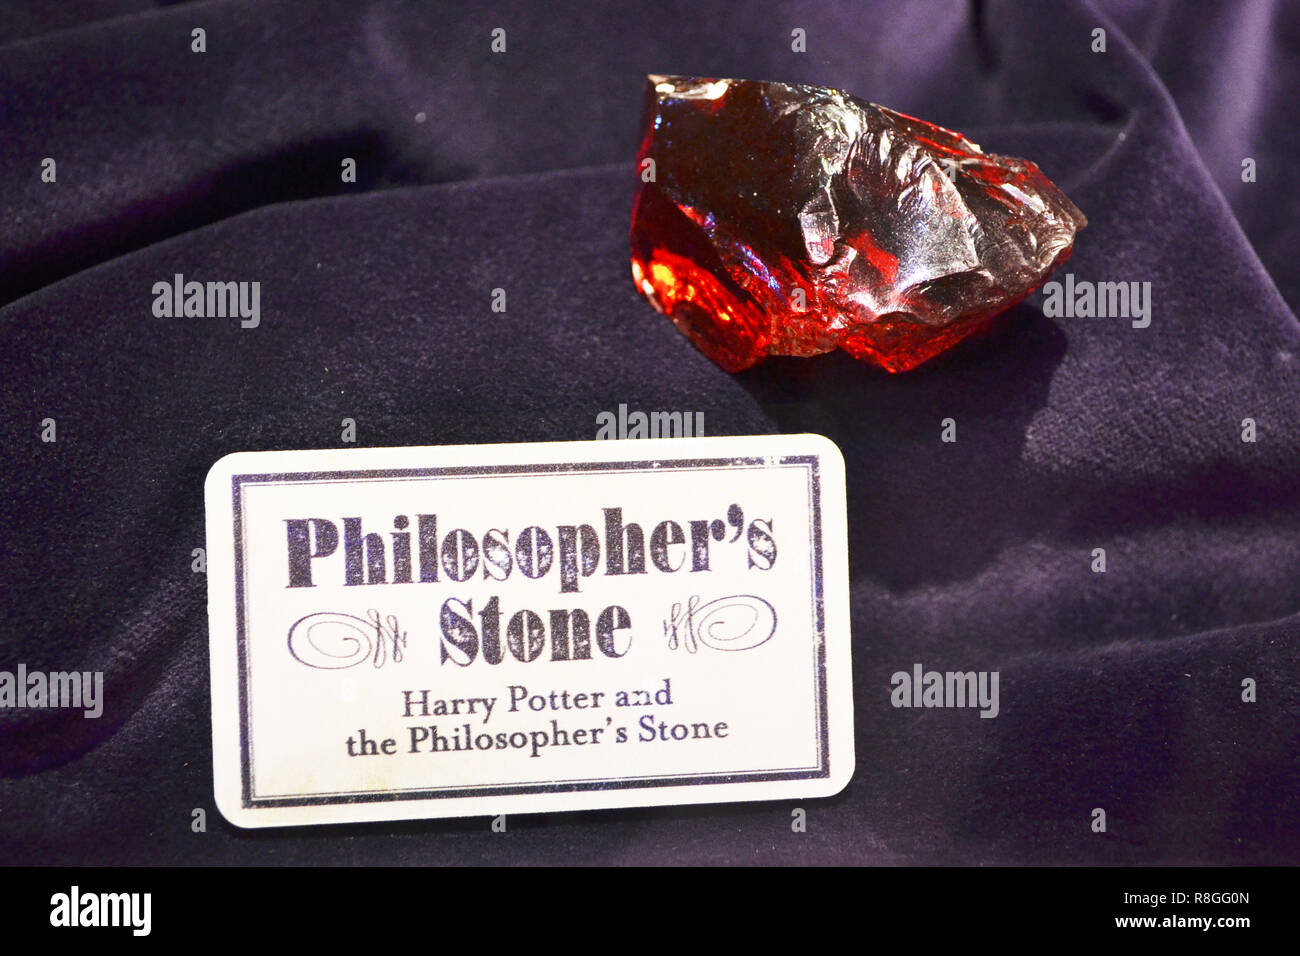 The Philosopher's Stone at the Harry Potter Studios at Leavesden, London, UK - Stock Image